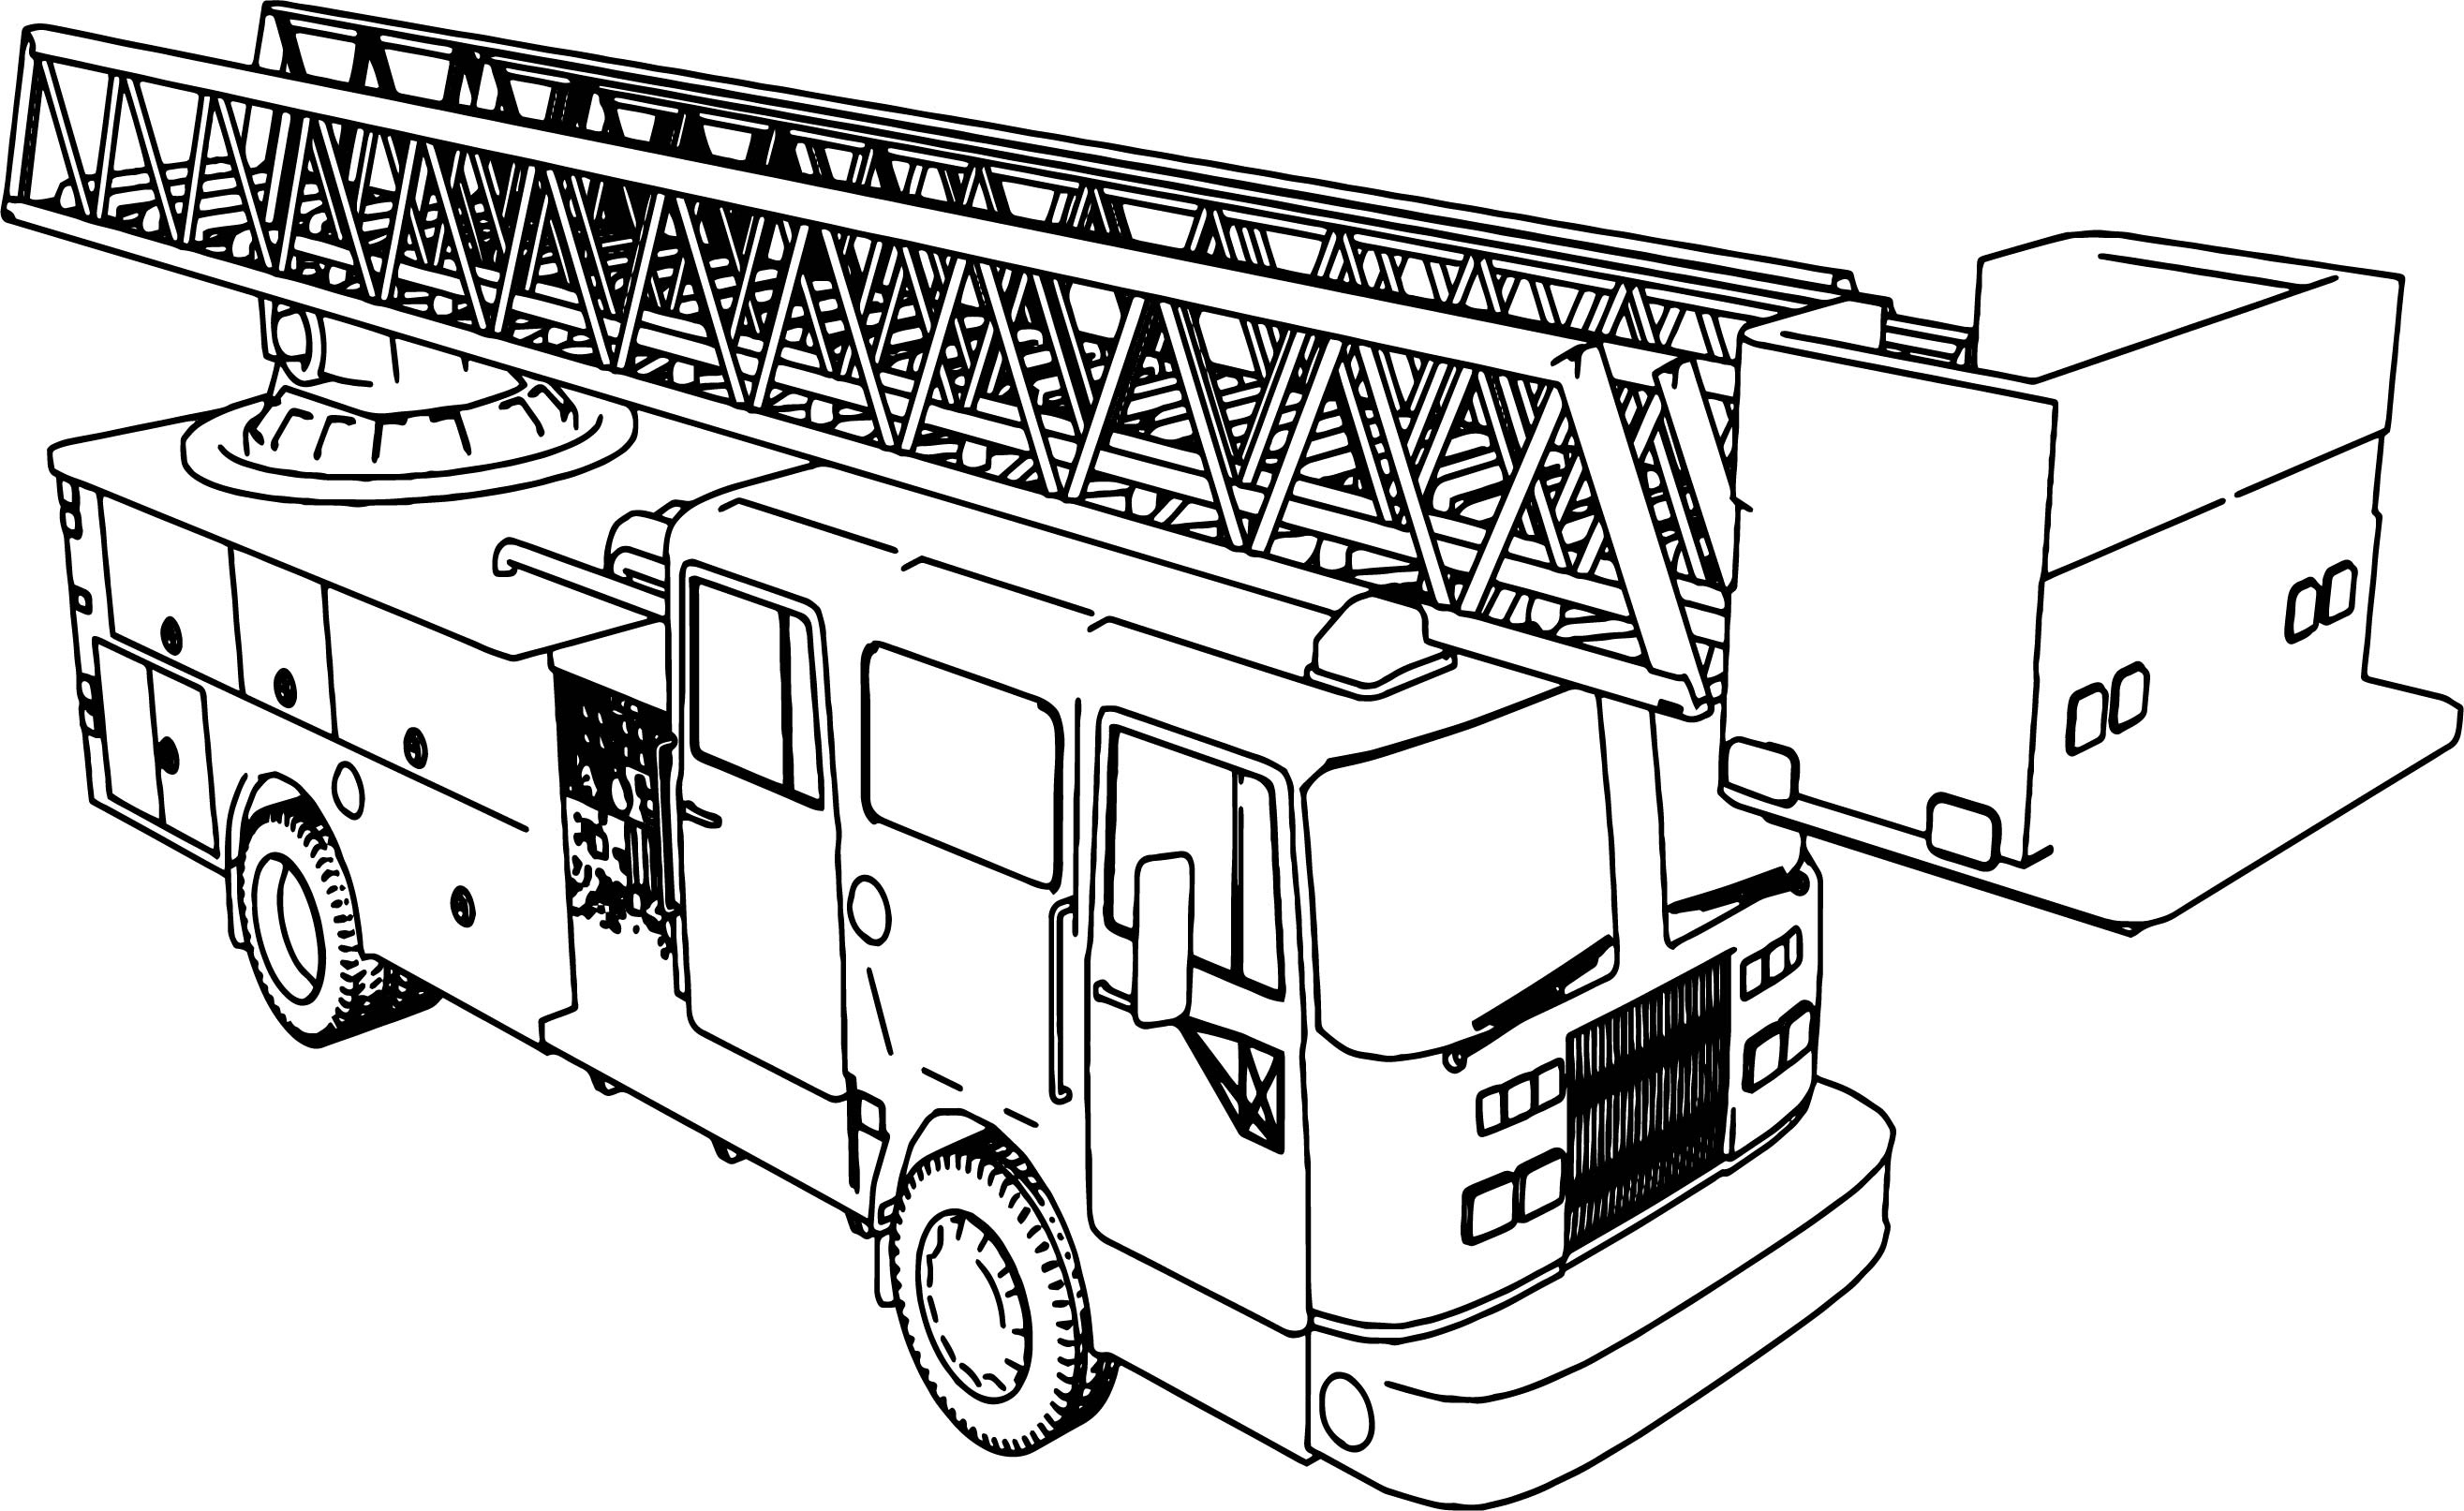 how to draw fire truck fire truck drawing pictures at paintingvalleycom draw how fire to truck